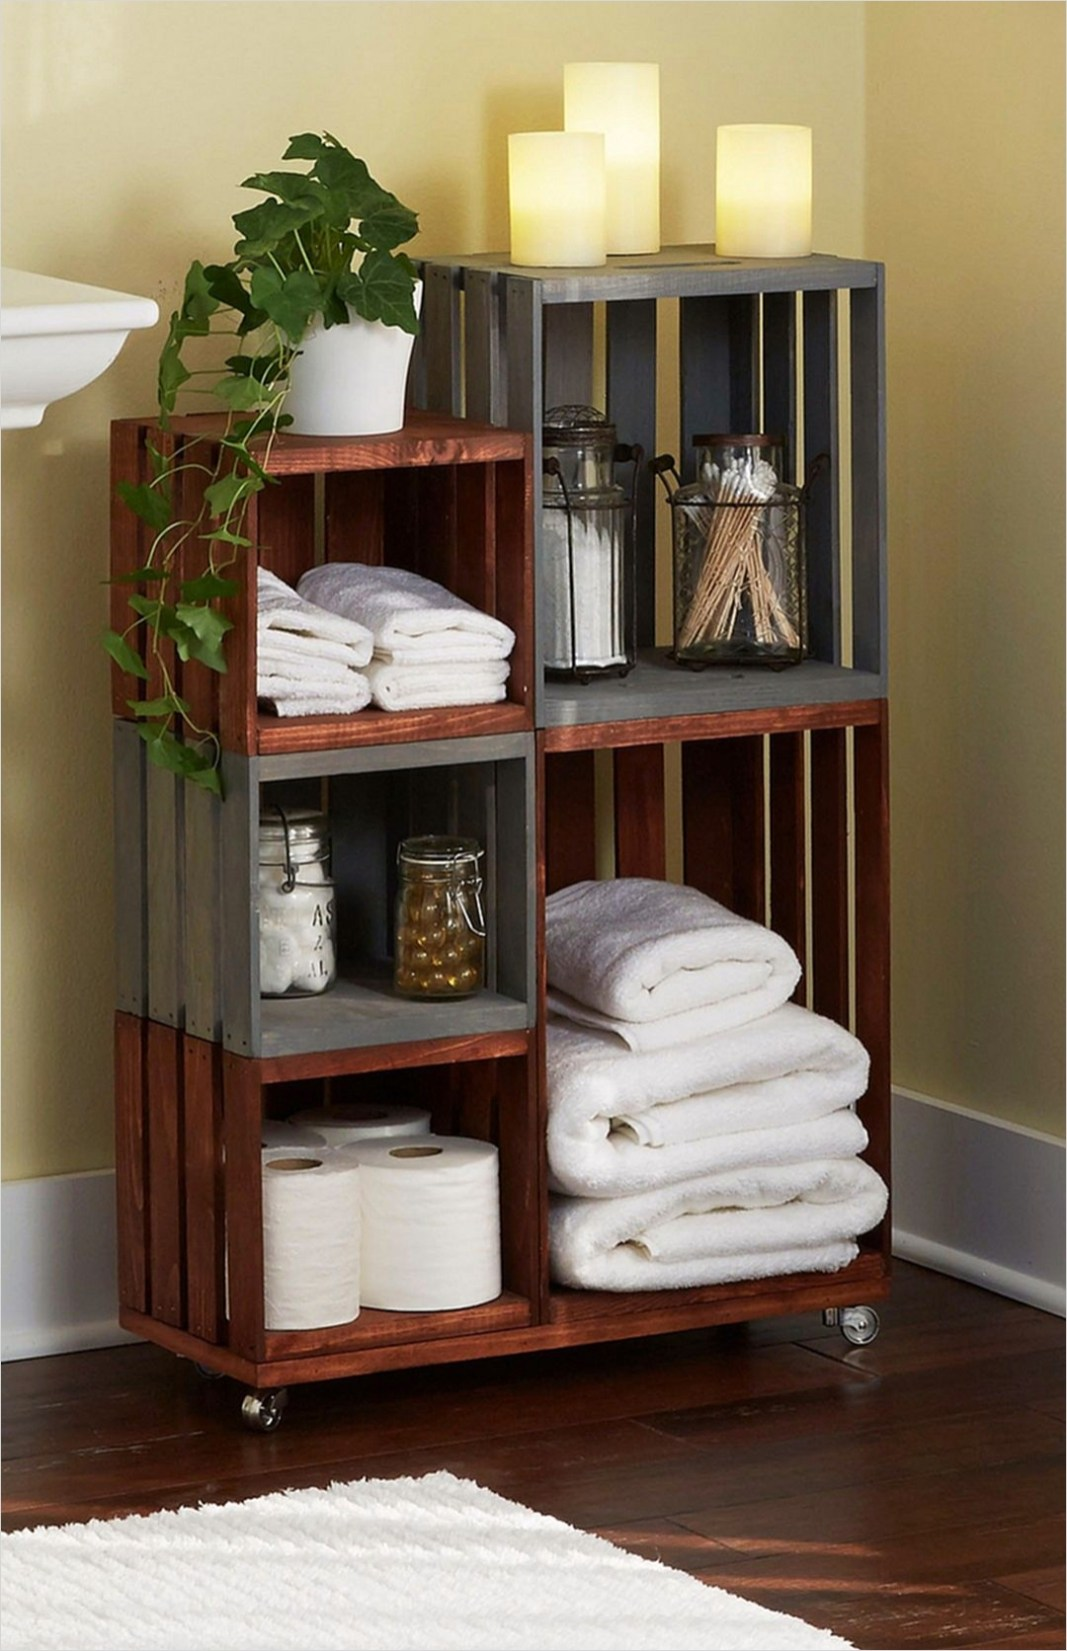 42 Creative Small Room Storage Ideas 35 Wonderful Storage Ideas for Small Space 444 — Fres Hoom 7